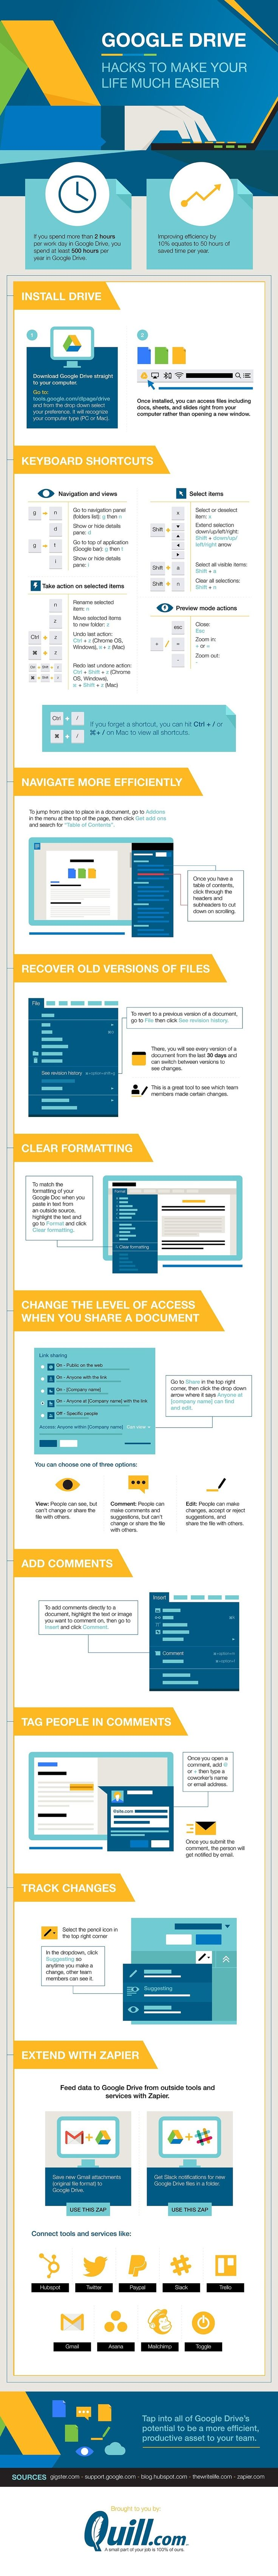 Google Drive Hacks to Make your Life Much Easier - #infographic